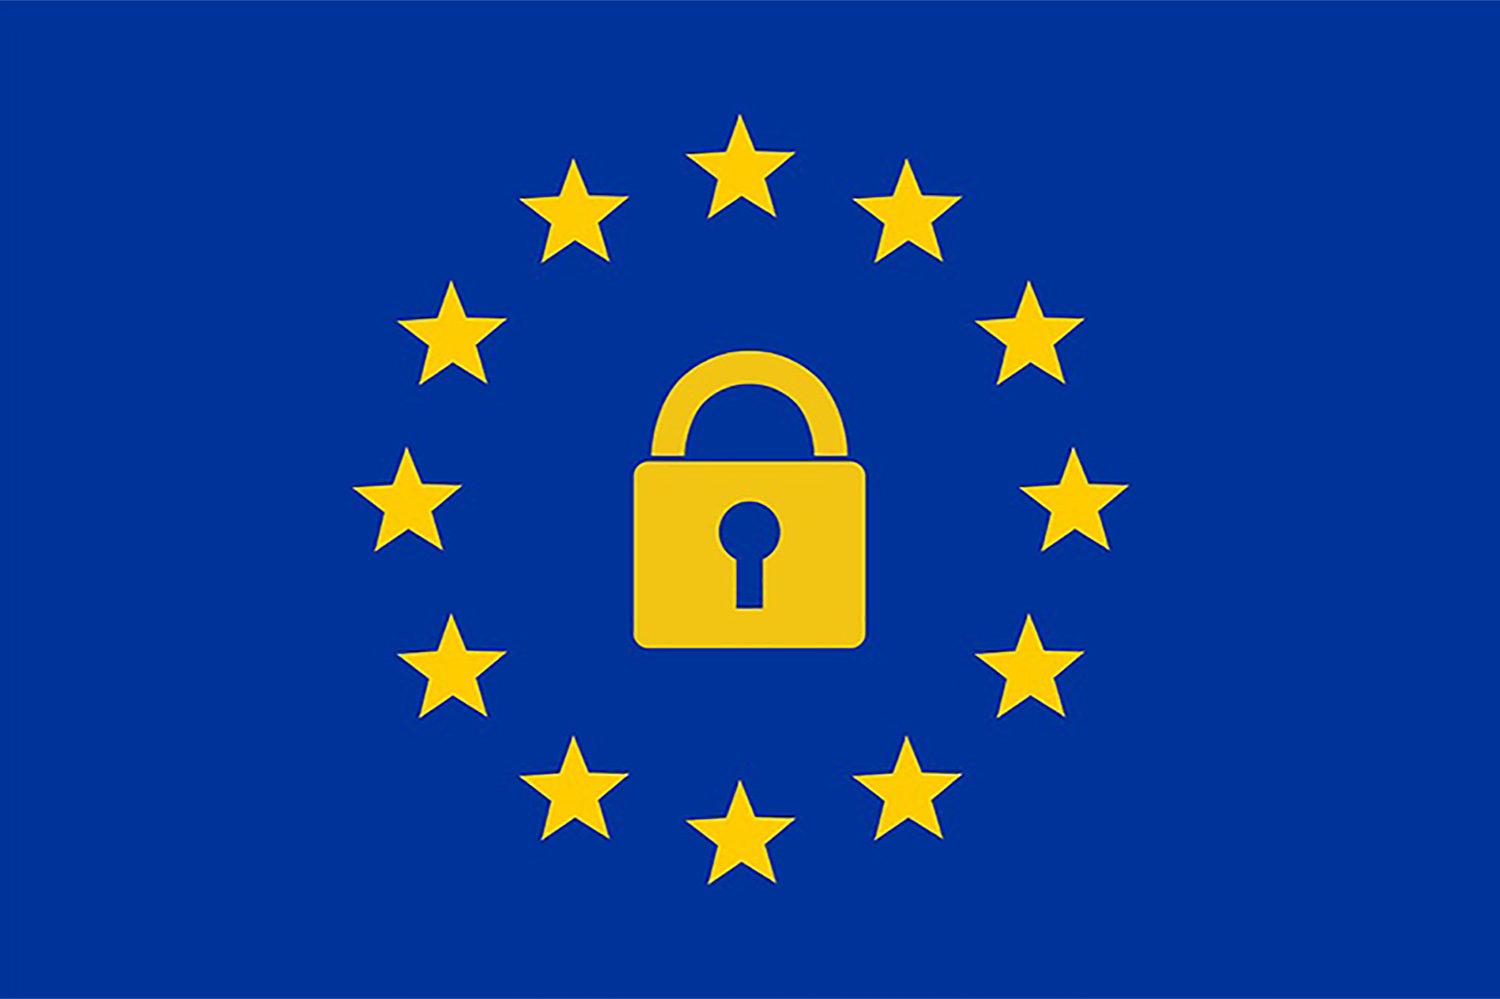 AVG/GDPR Privacy statement